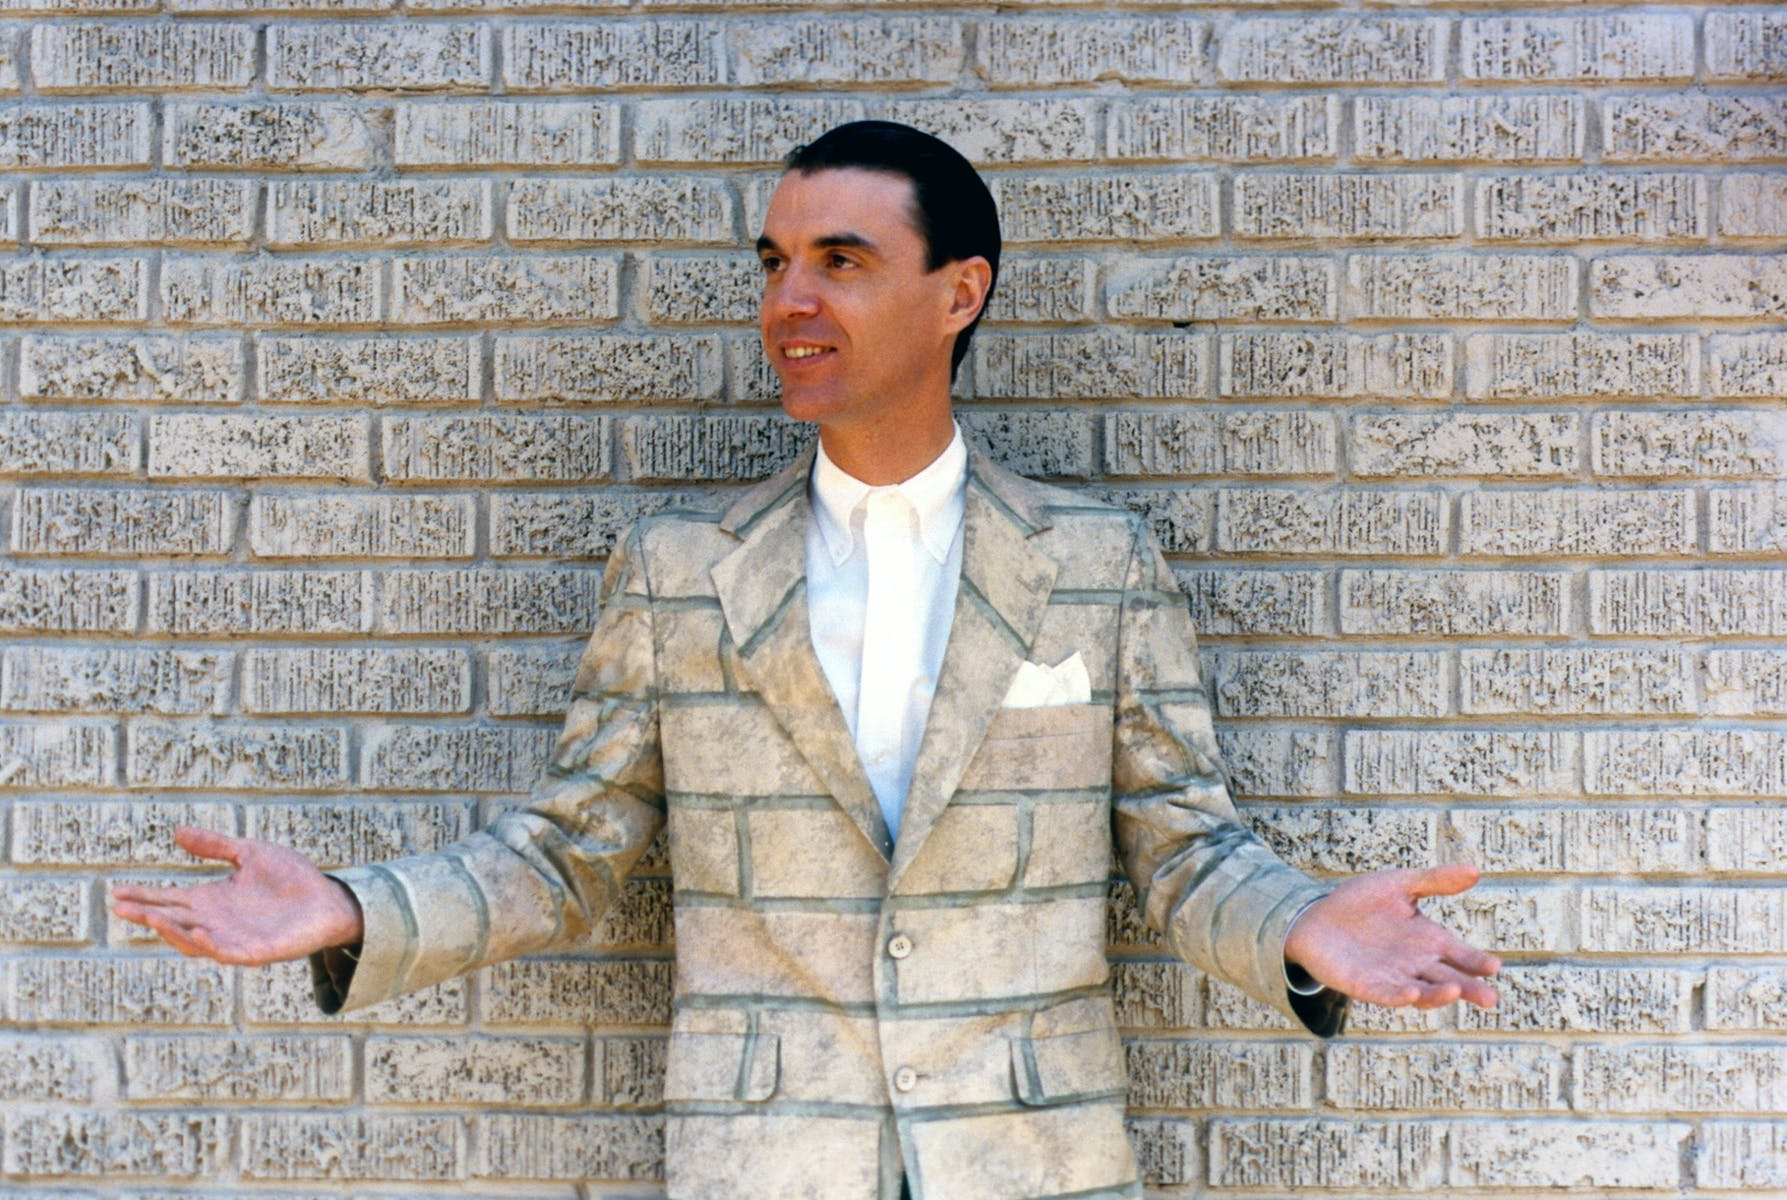 David Byrne standing against a brick wall in a brick patterned suit.